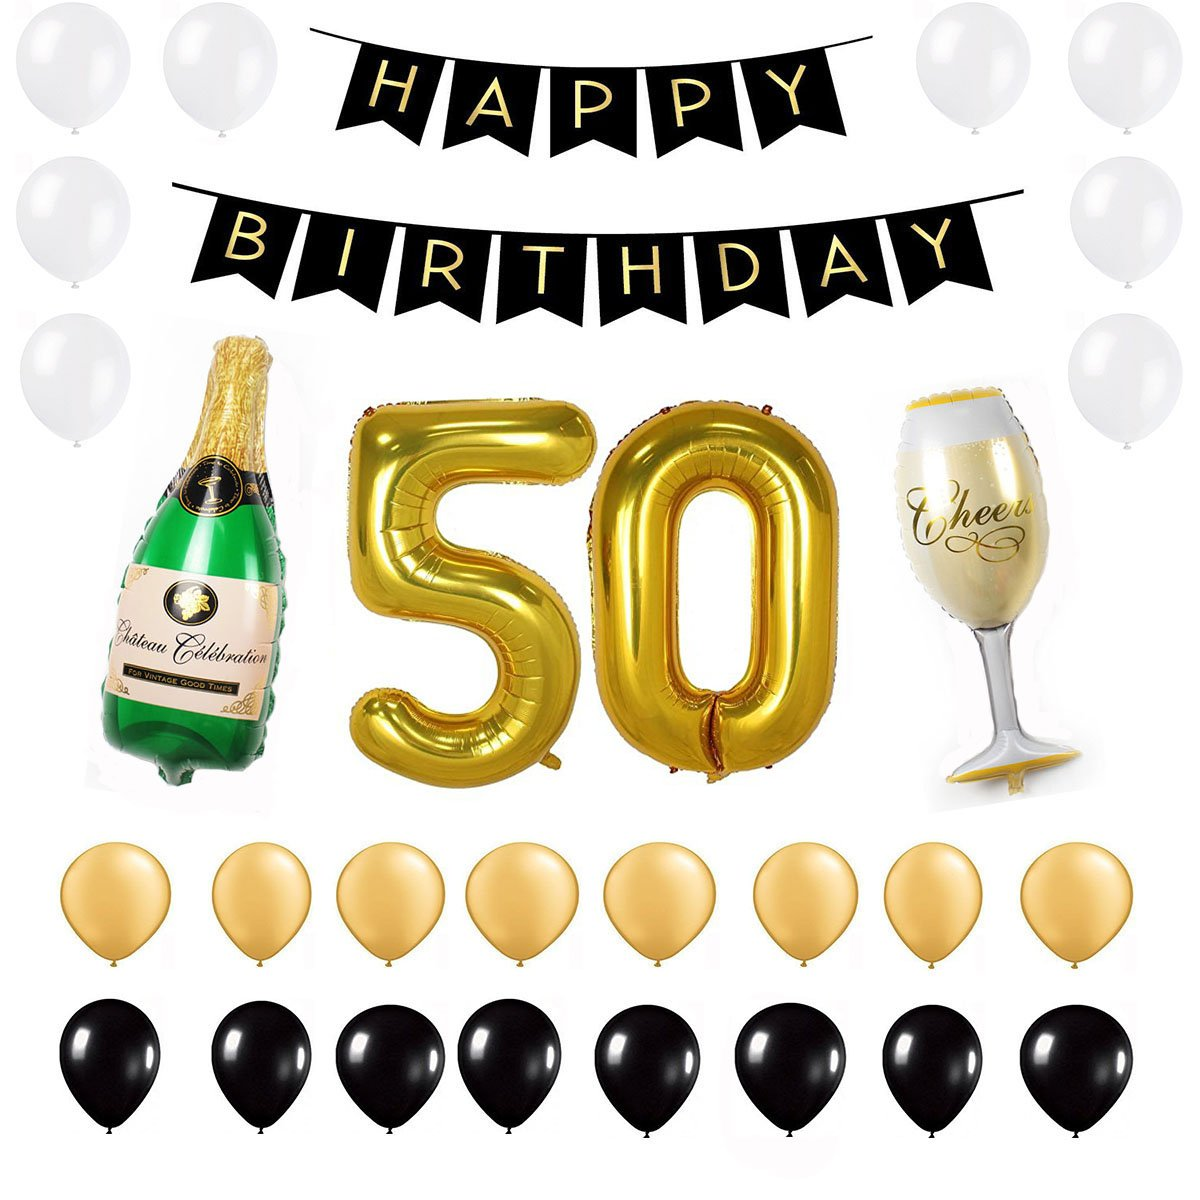 Amazon 50th Birthday Party Decorations Pack Gold Black White Happy Banner 40inch 50 Number Balloon Year Old Supplies For Women